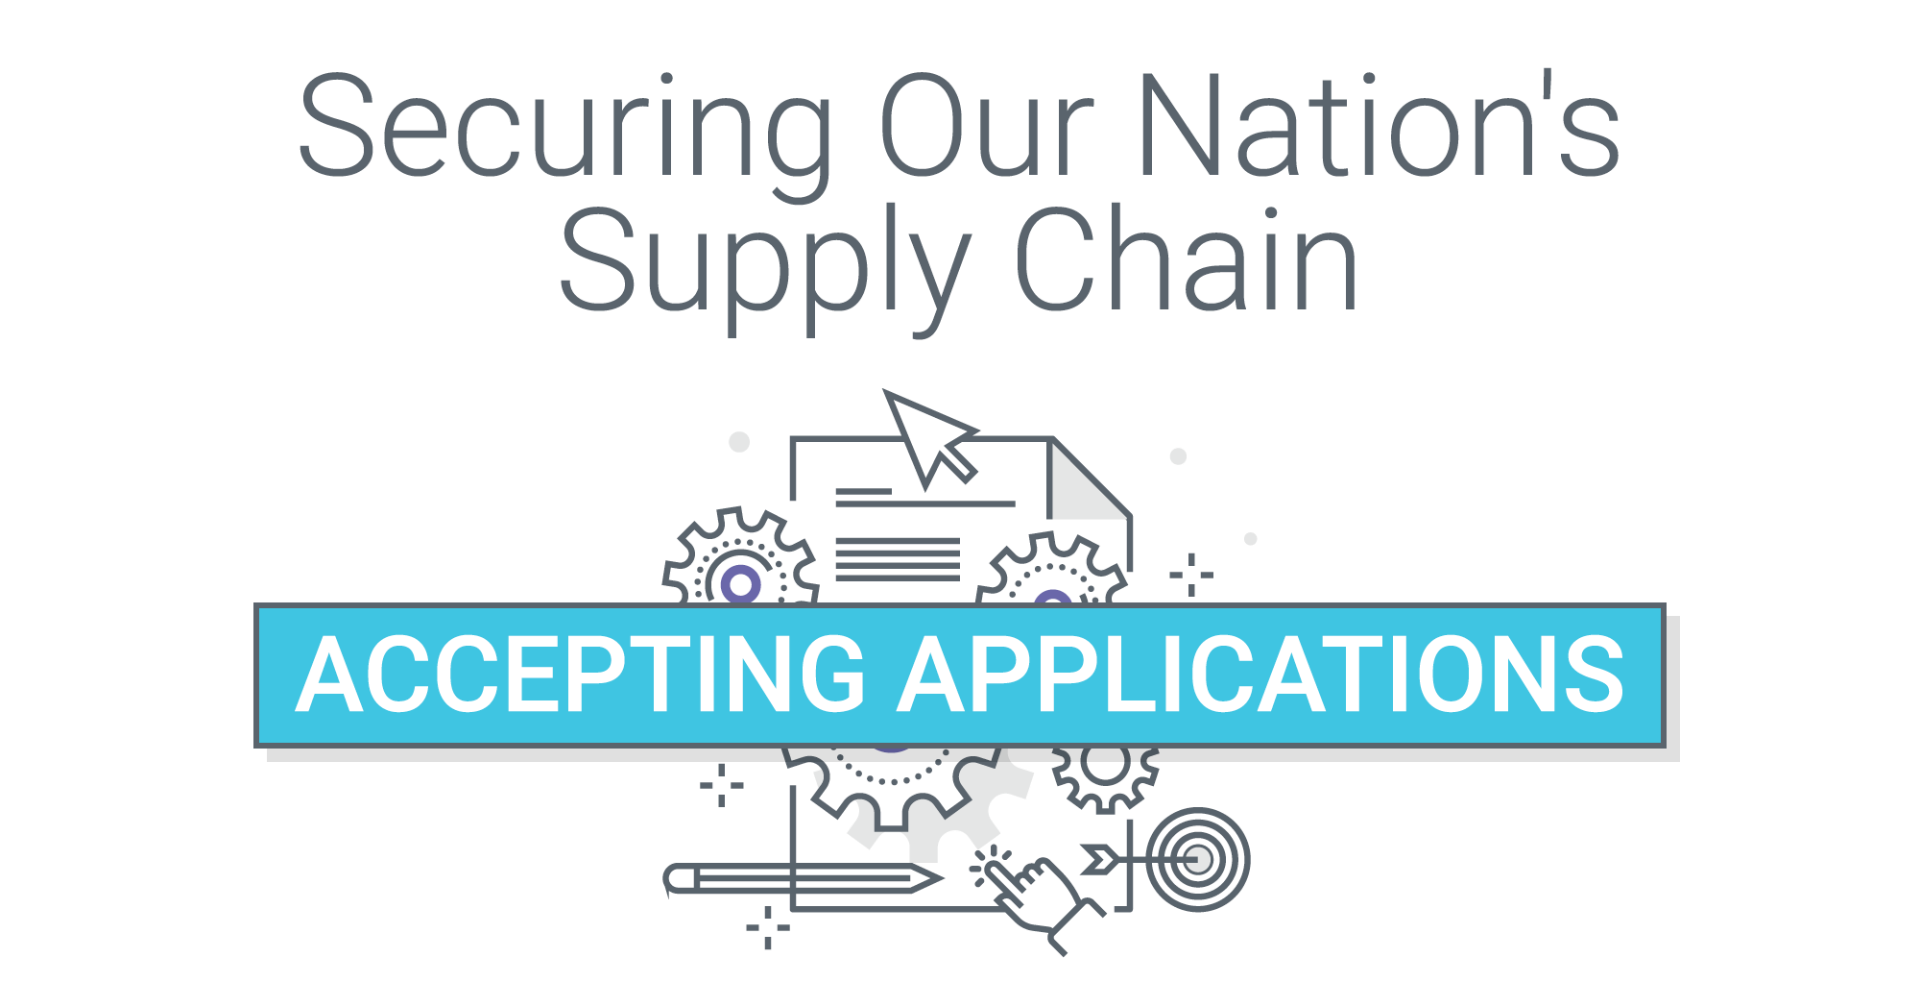 Securing our nation's supply chain - Accepting Applications